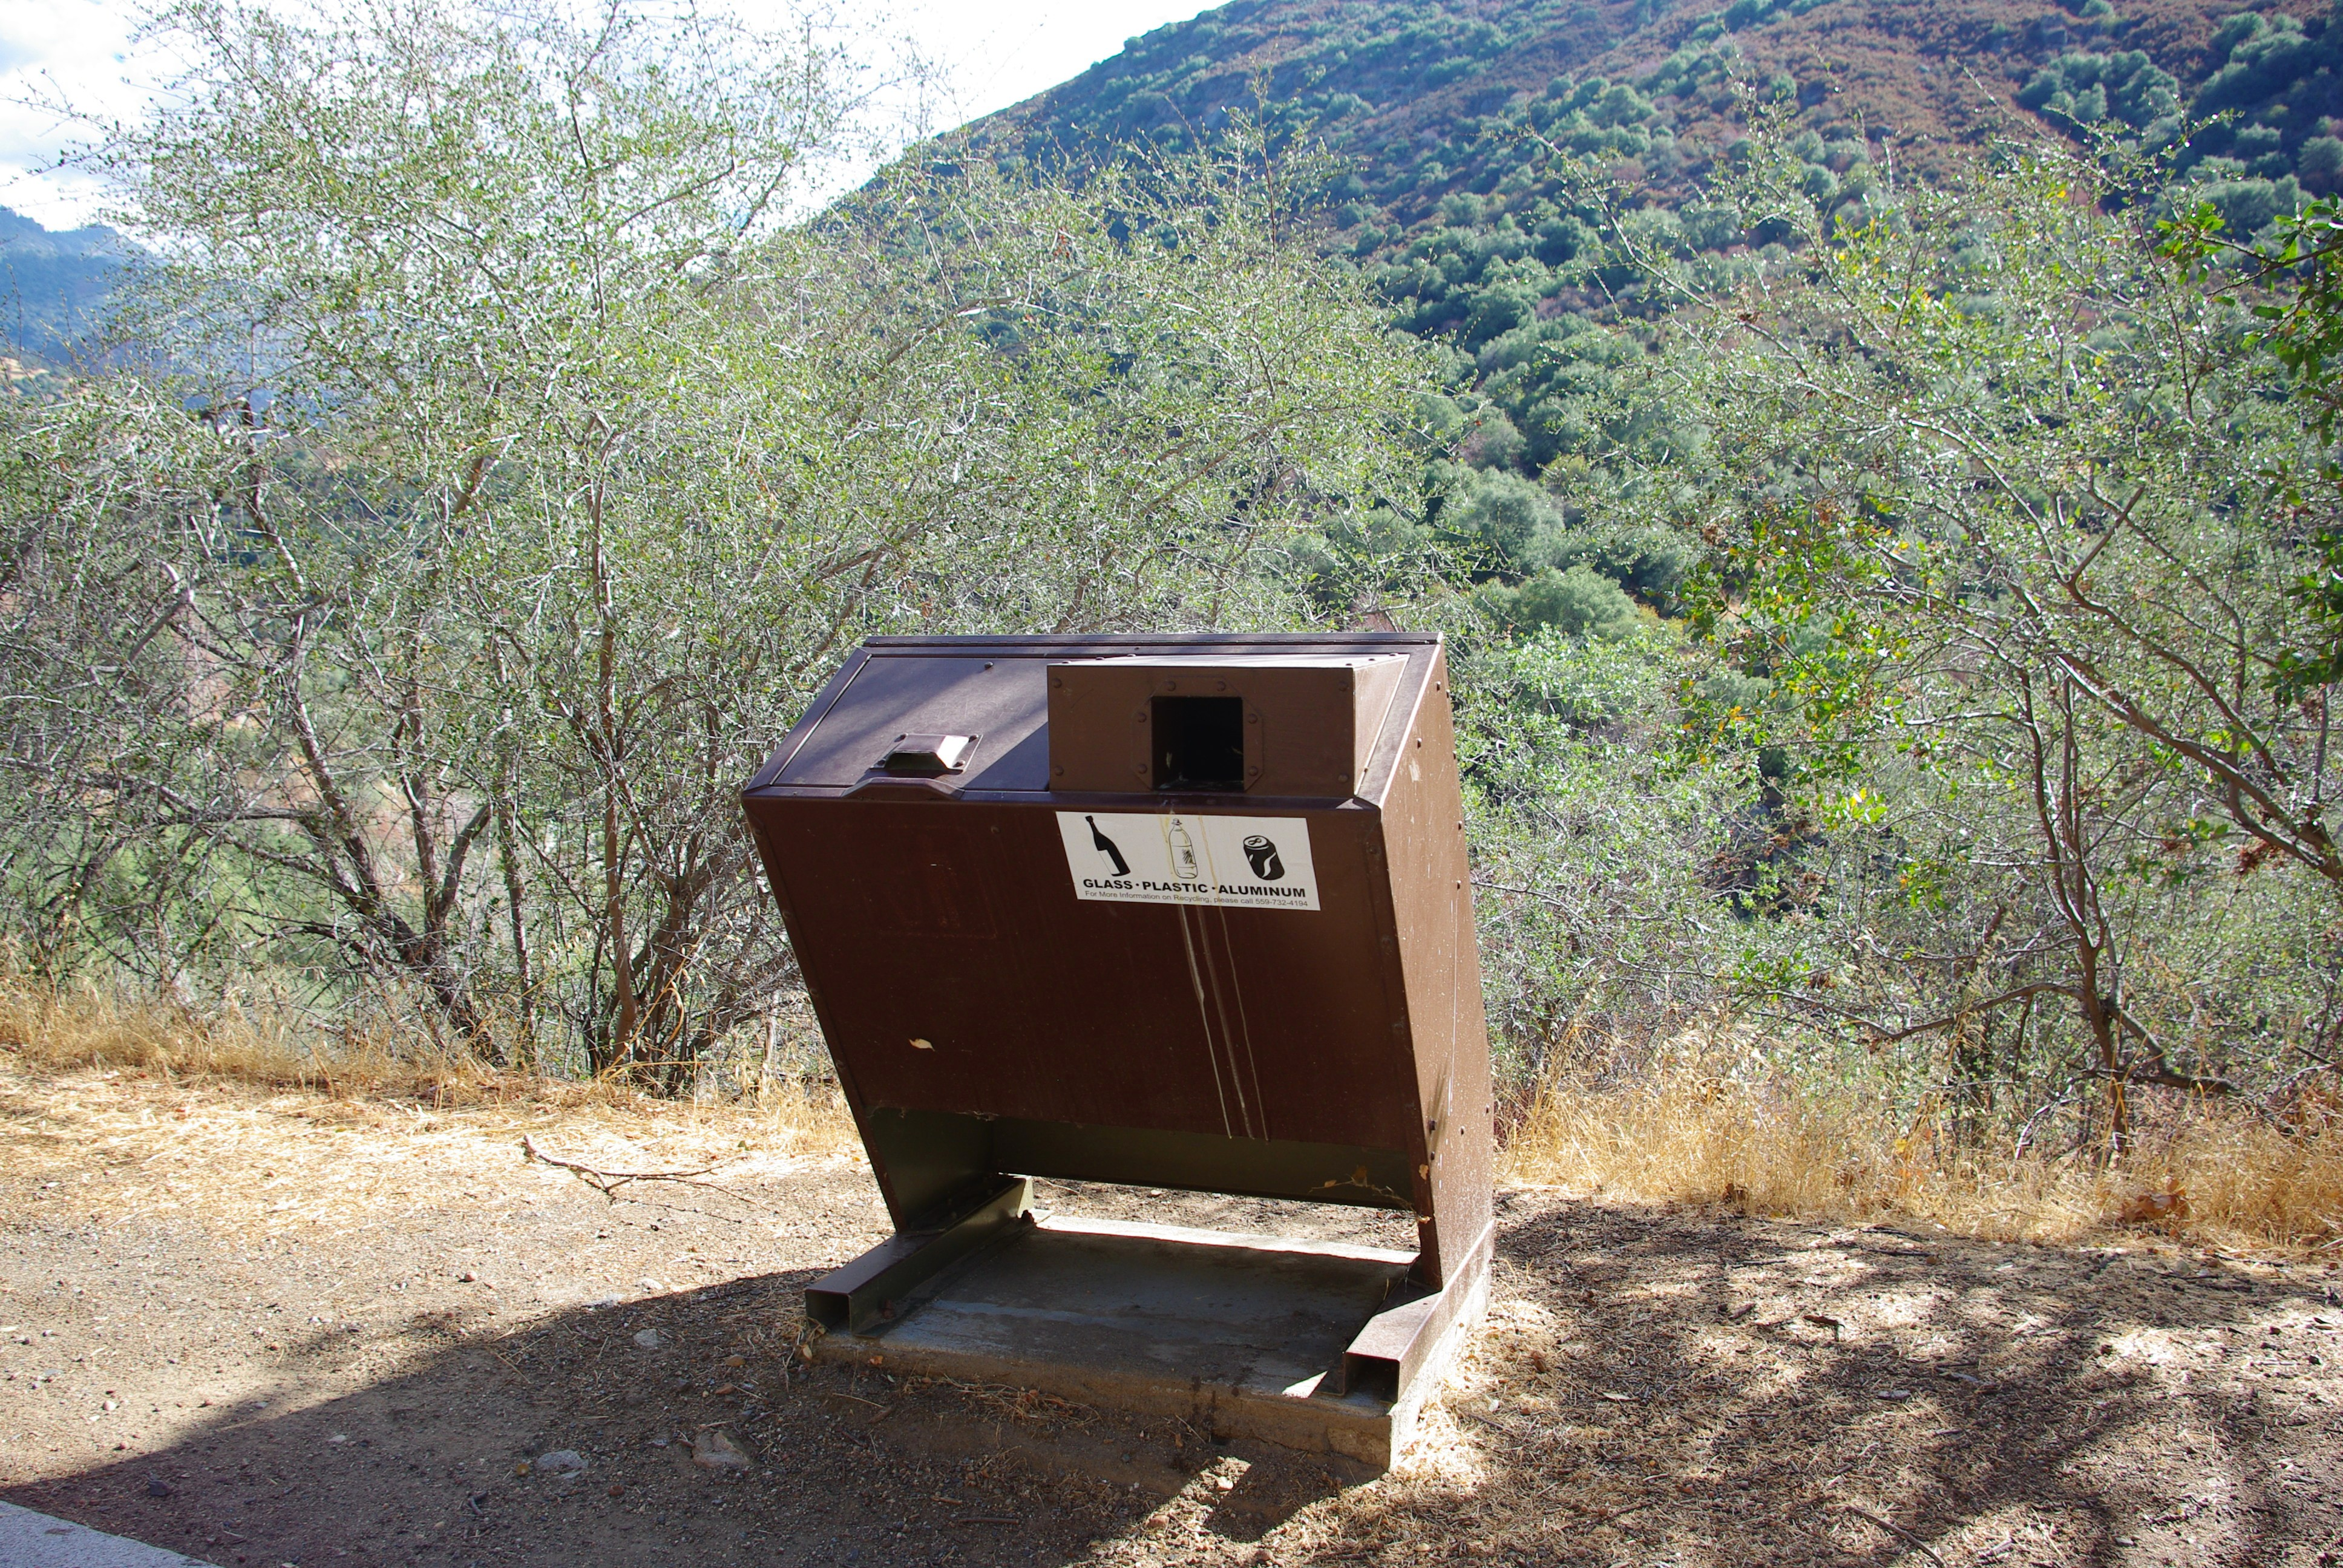 File:Trash container Sequoia National Park 2.JPG - Wikimedia Commons